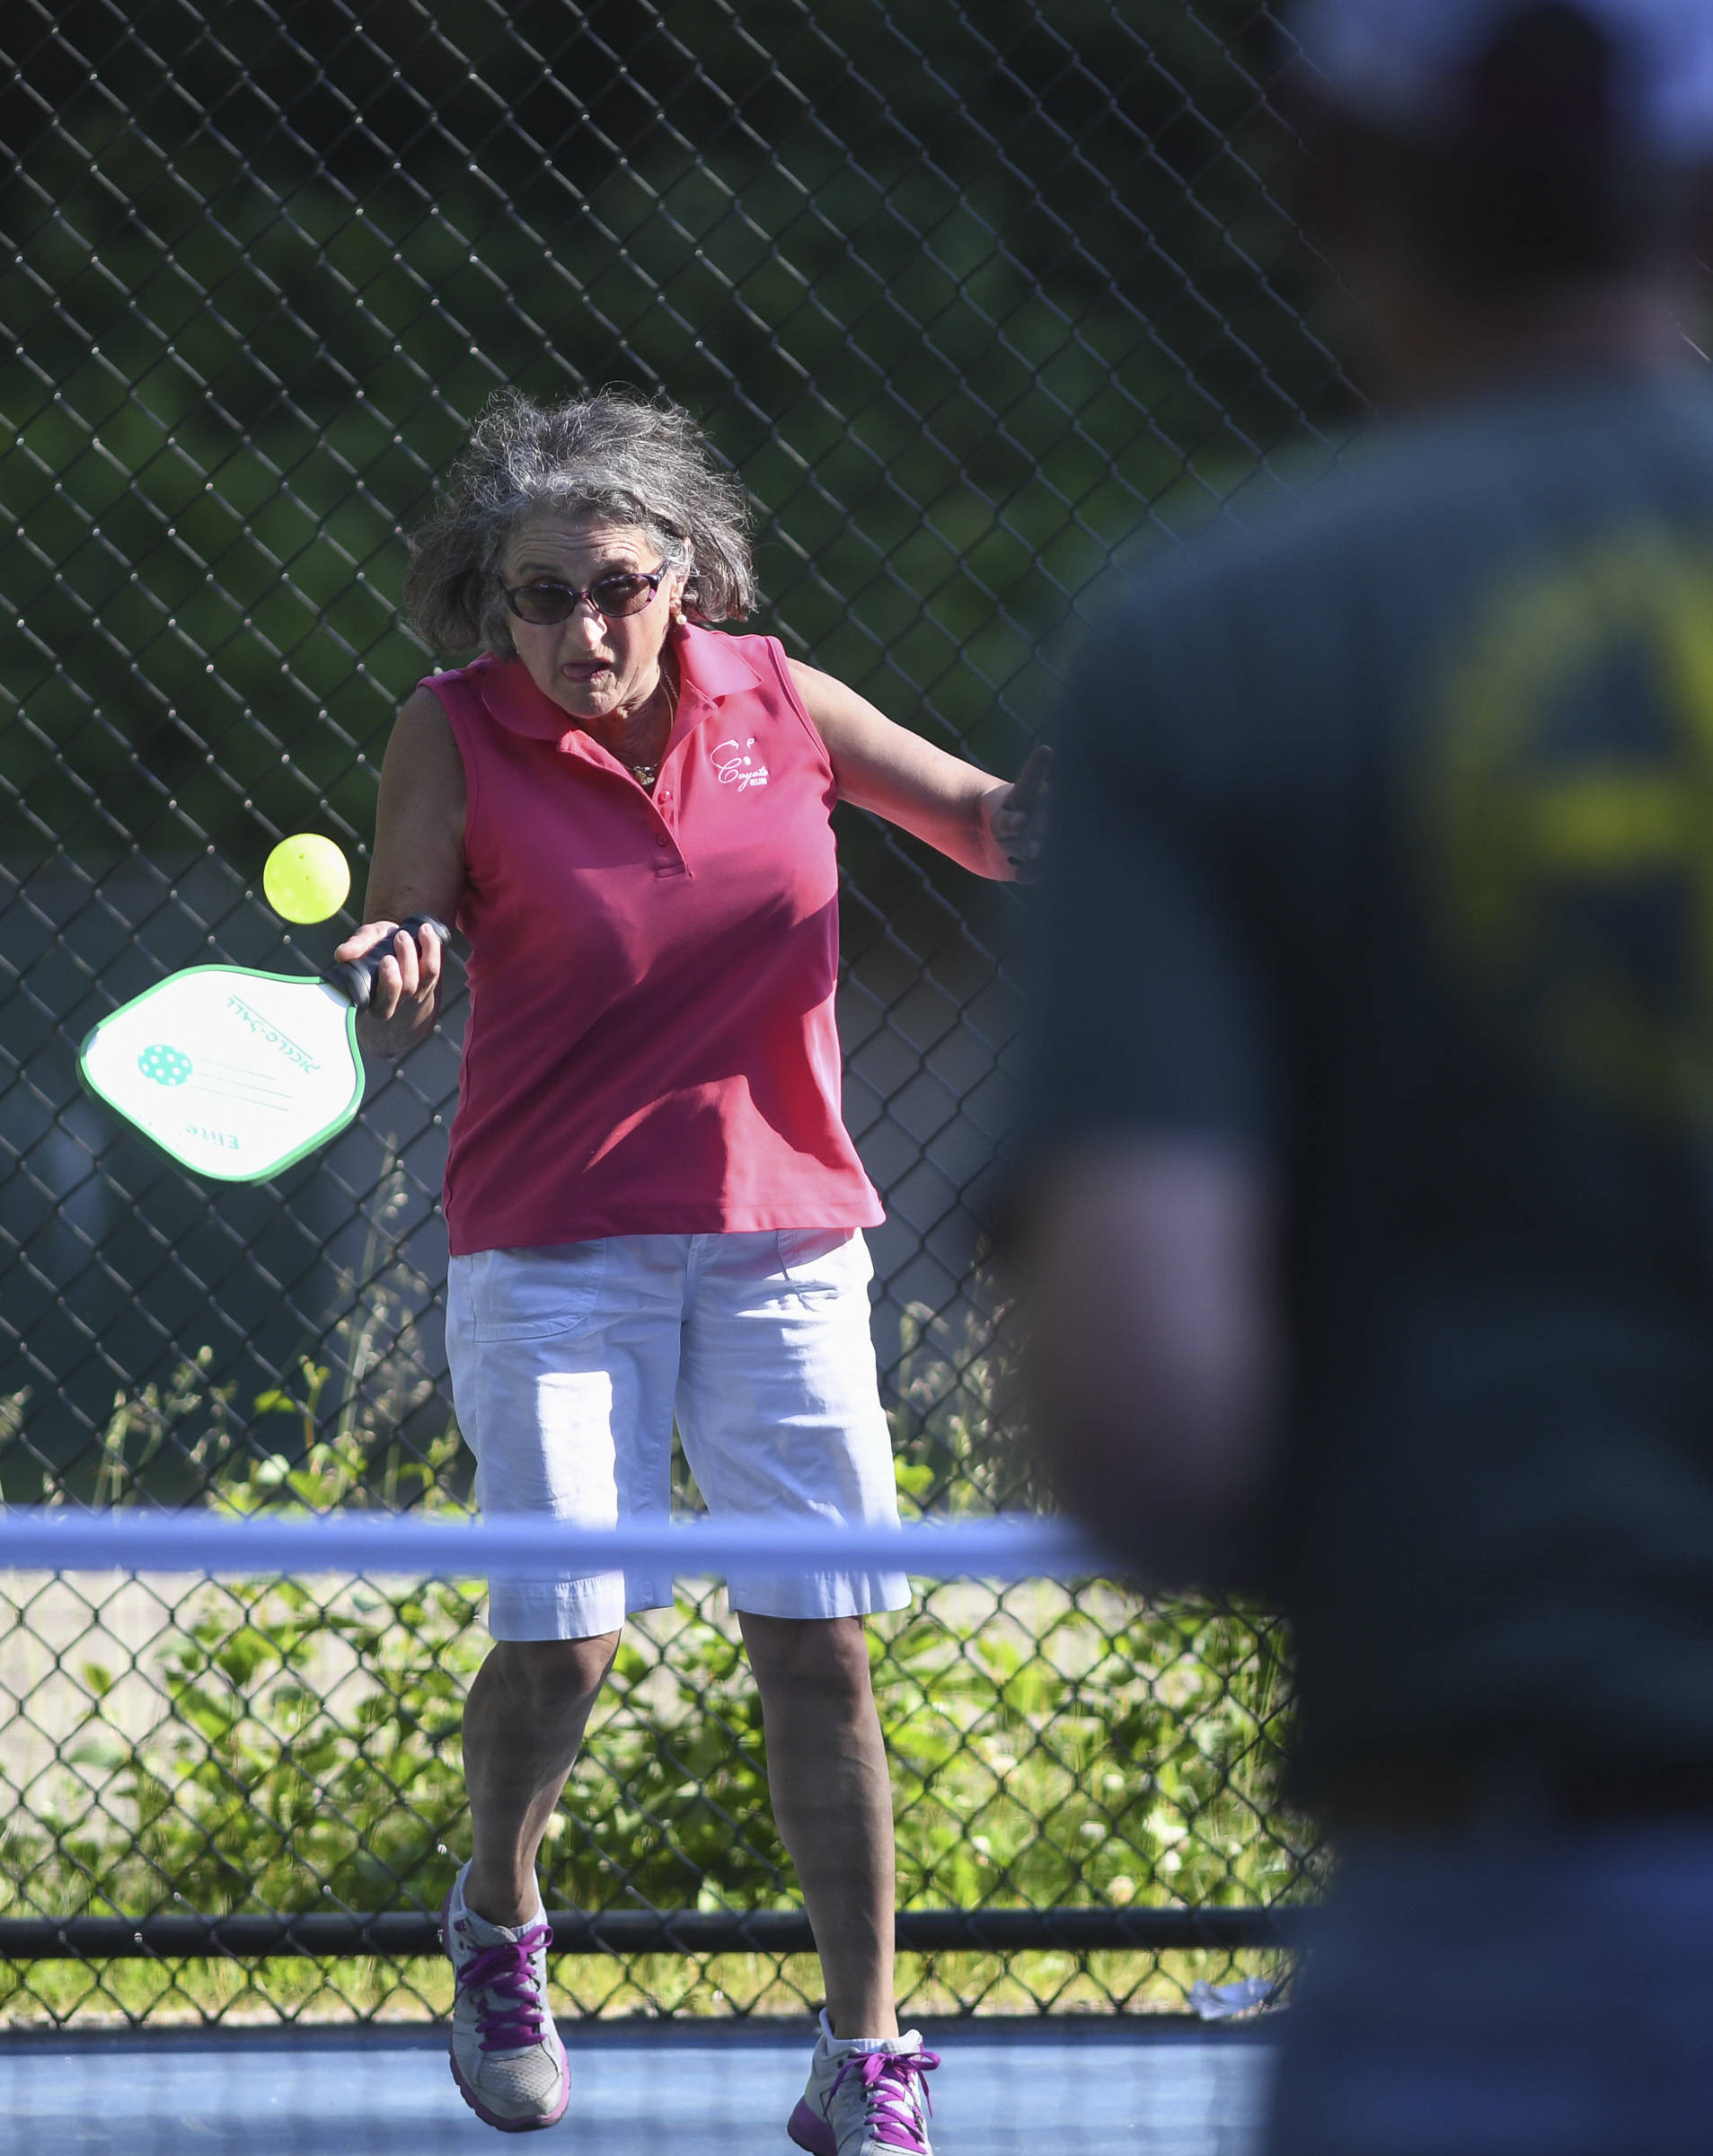 Orlinda Kittredge plays the ball during a pickleball match at the Cope Park tennis courts on Wednesday, June 26, 2019. (Michael Penn | Juneau Empire)